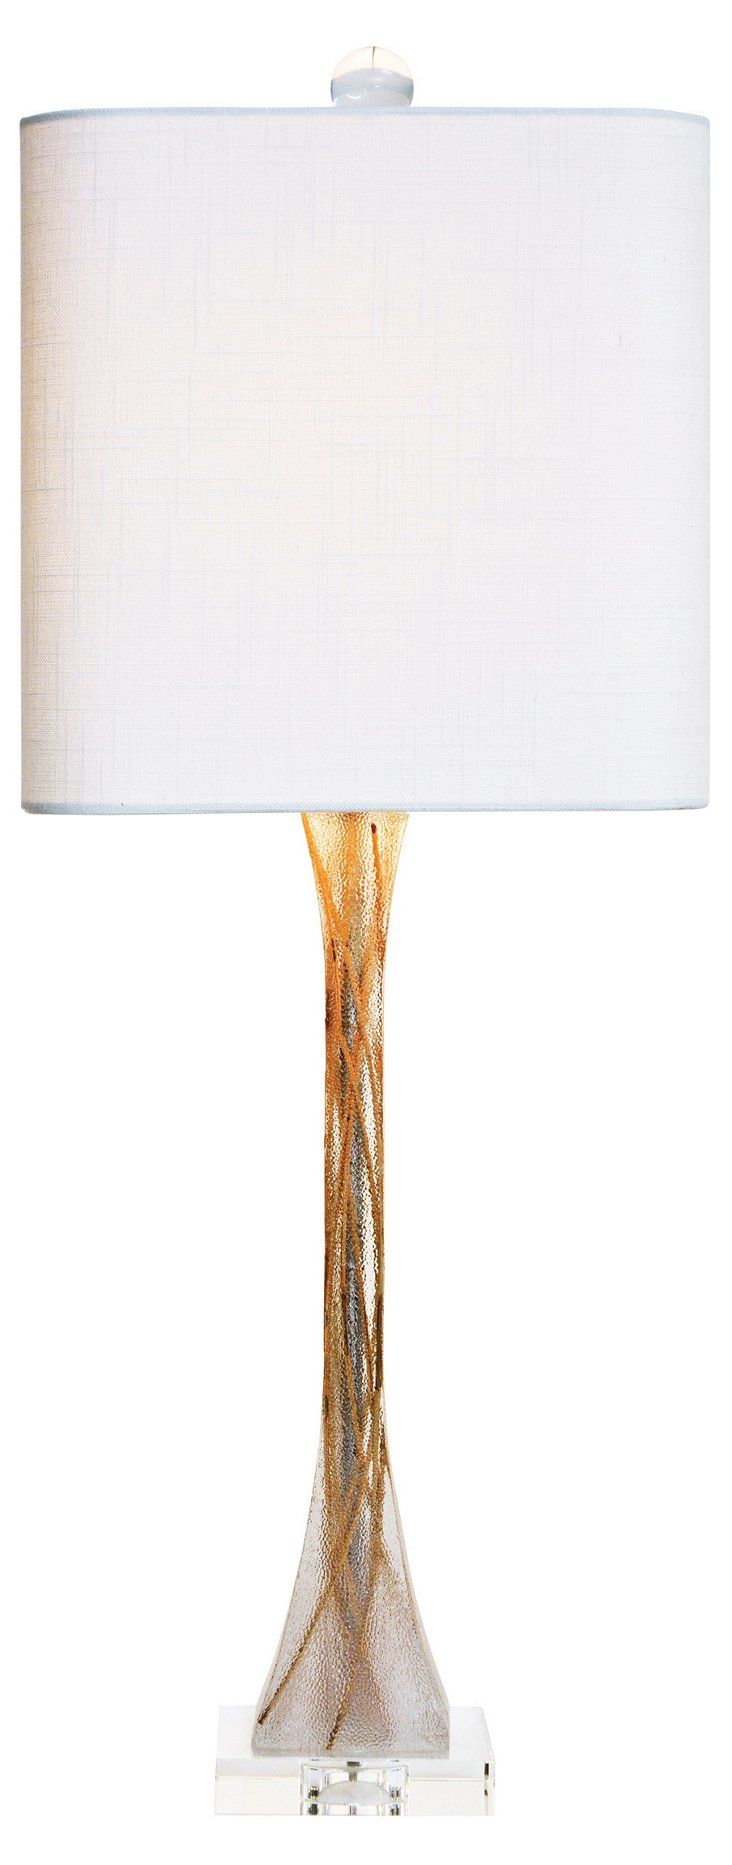 Mirage Table Lamp, Frosted Clear